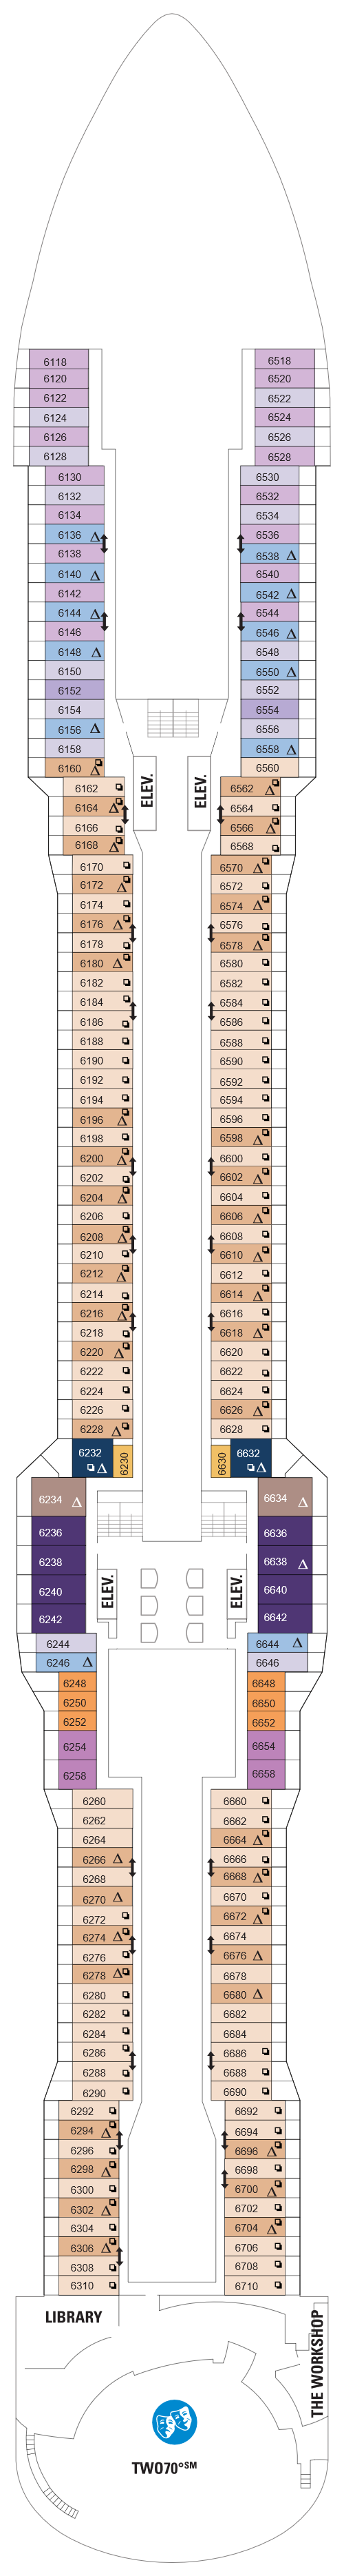 Quantum Of The Seas Deck 6 layout